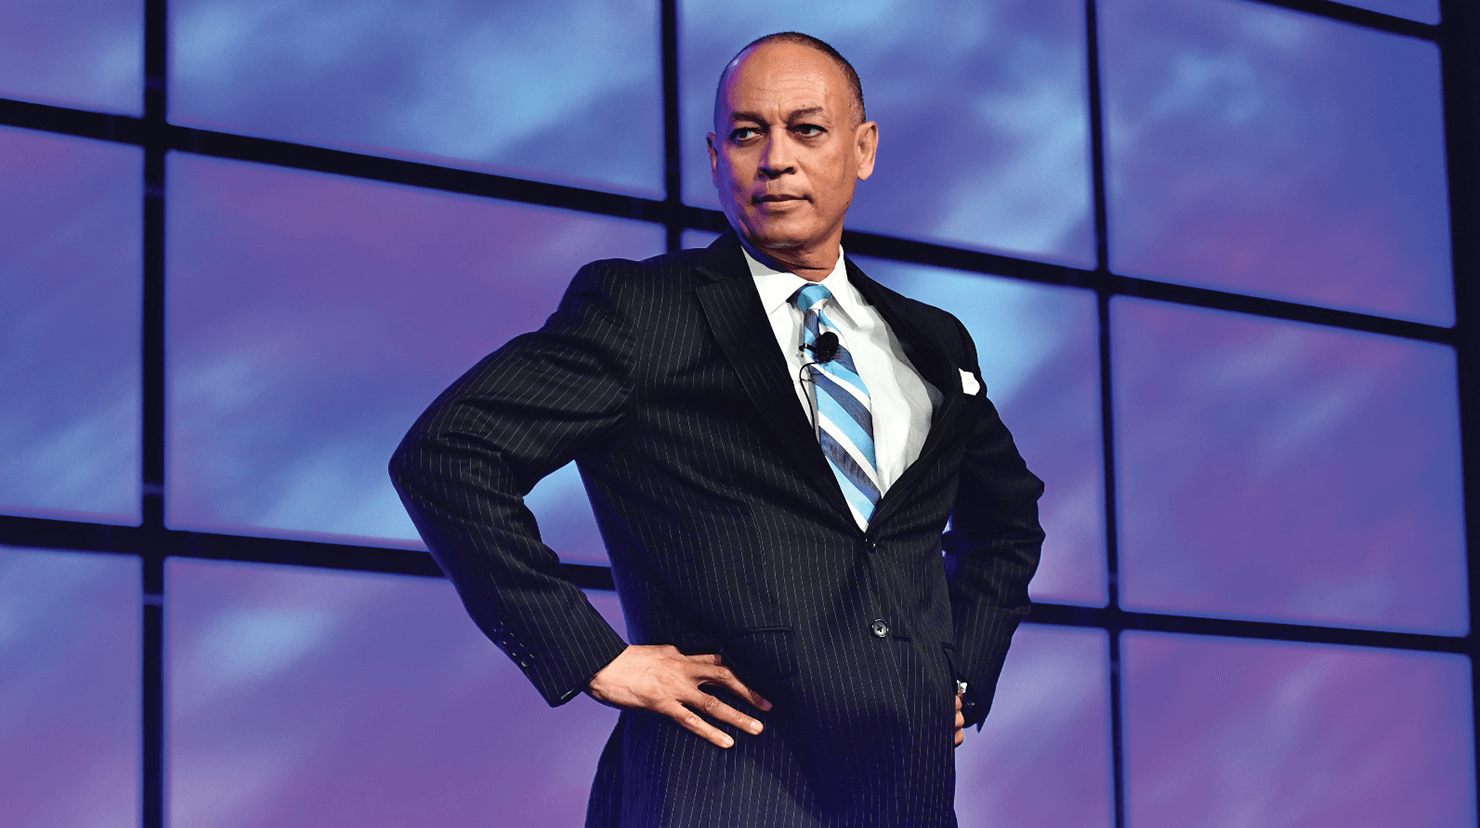 Ed Tate dressed in a suit and tie strikes a power pose onstage